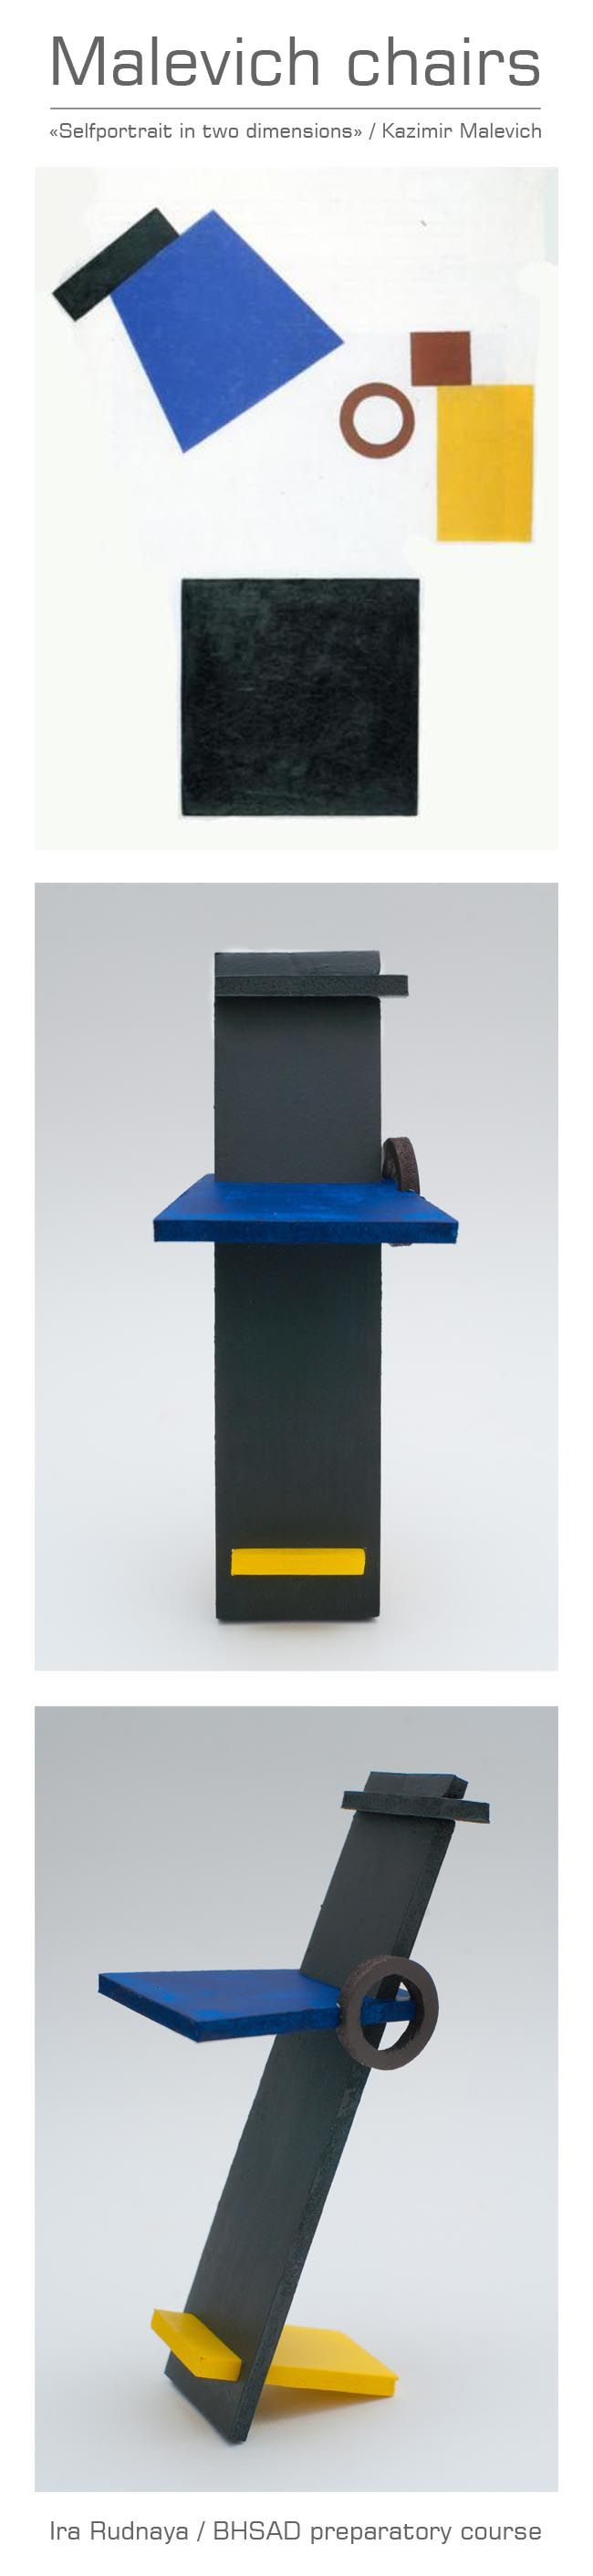 """Malevich chair / Ira Rudnaya / BHSAD preparatory course / """"Selfportrait in two dimensions"""""""